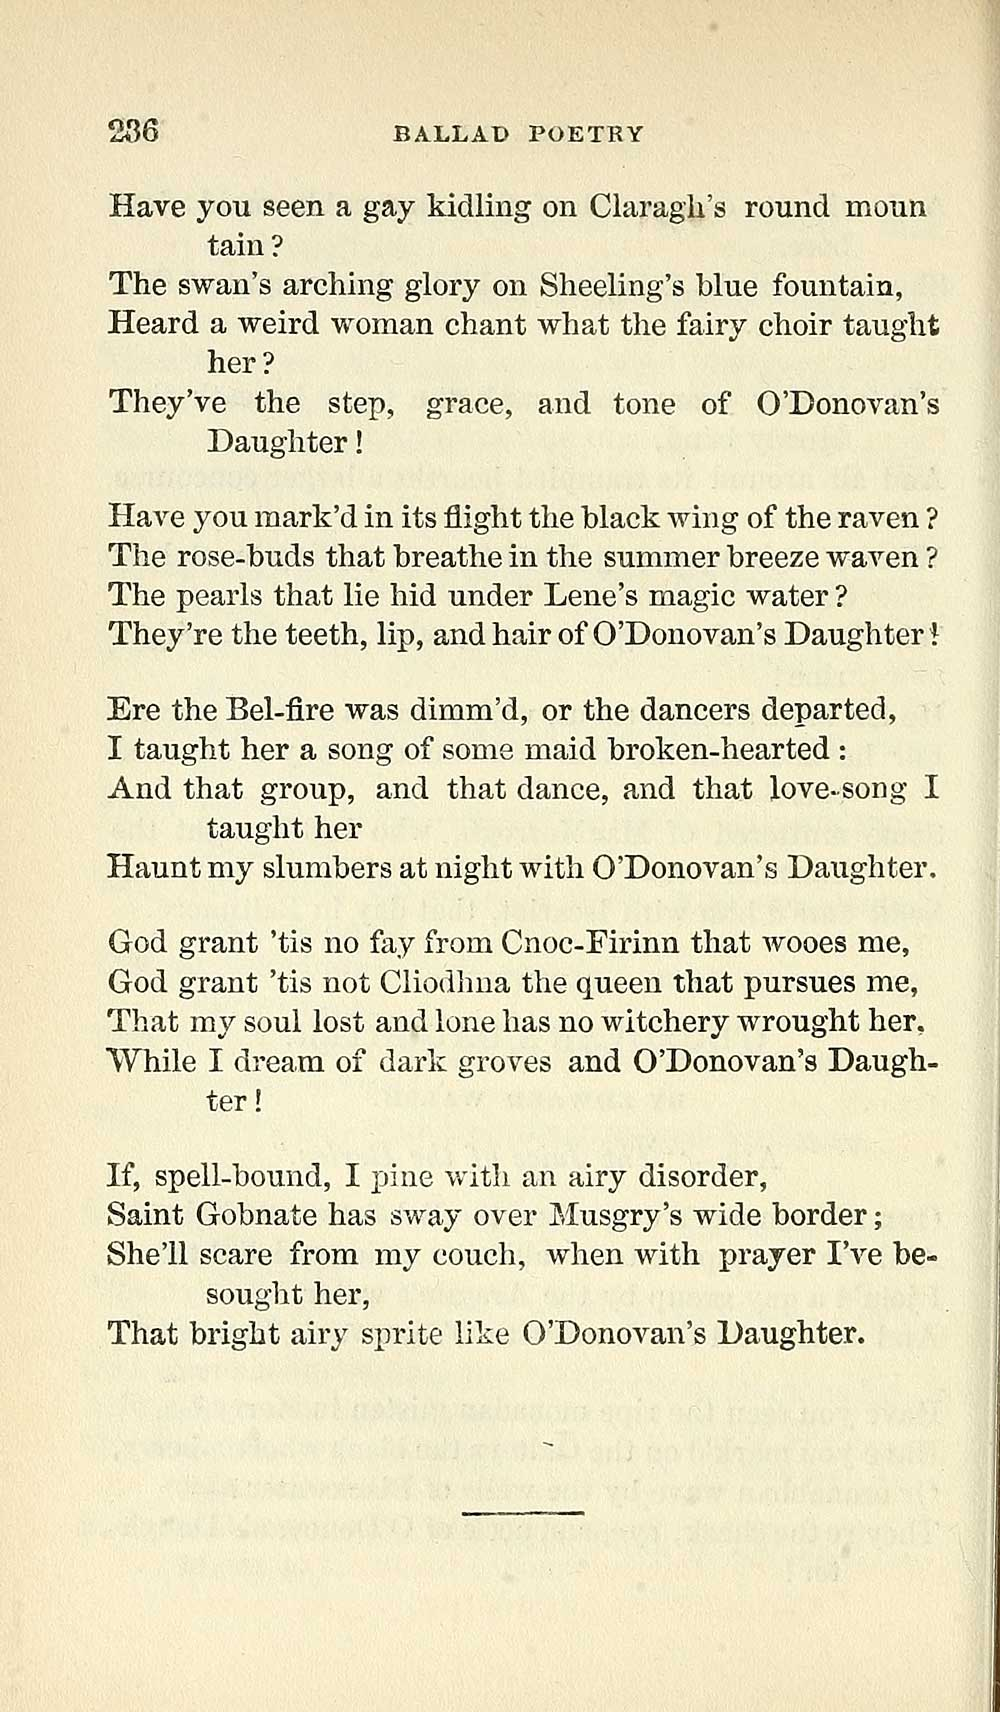 410) Page 236 - Glen Collection of printed music > Printed text